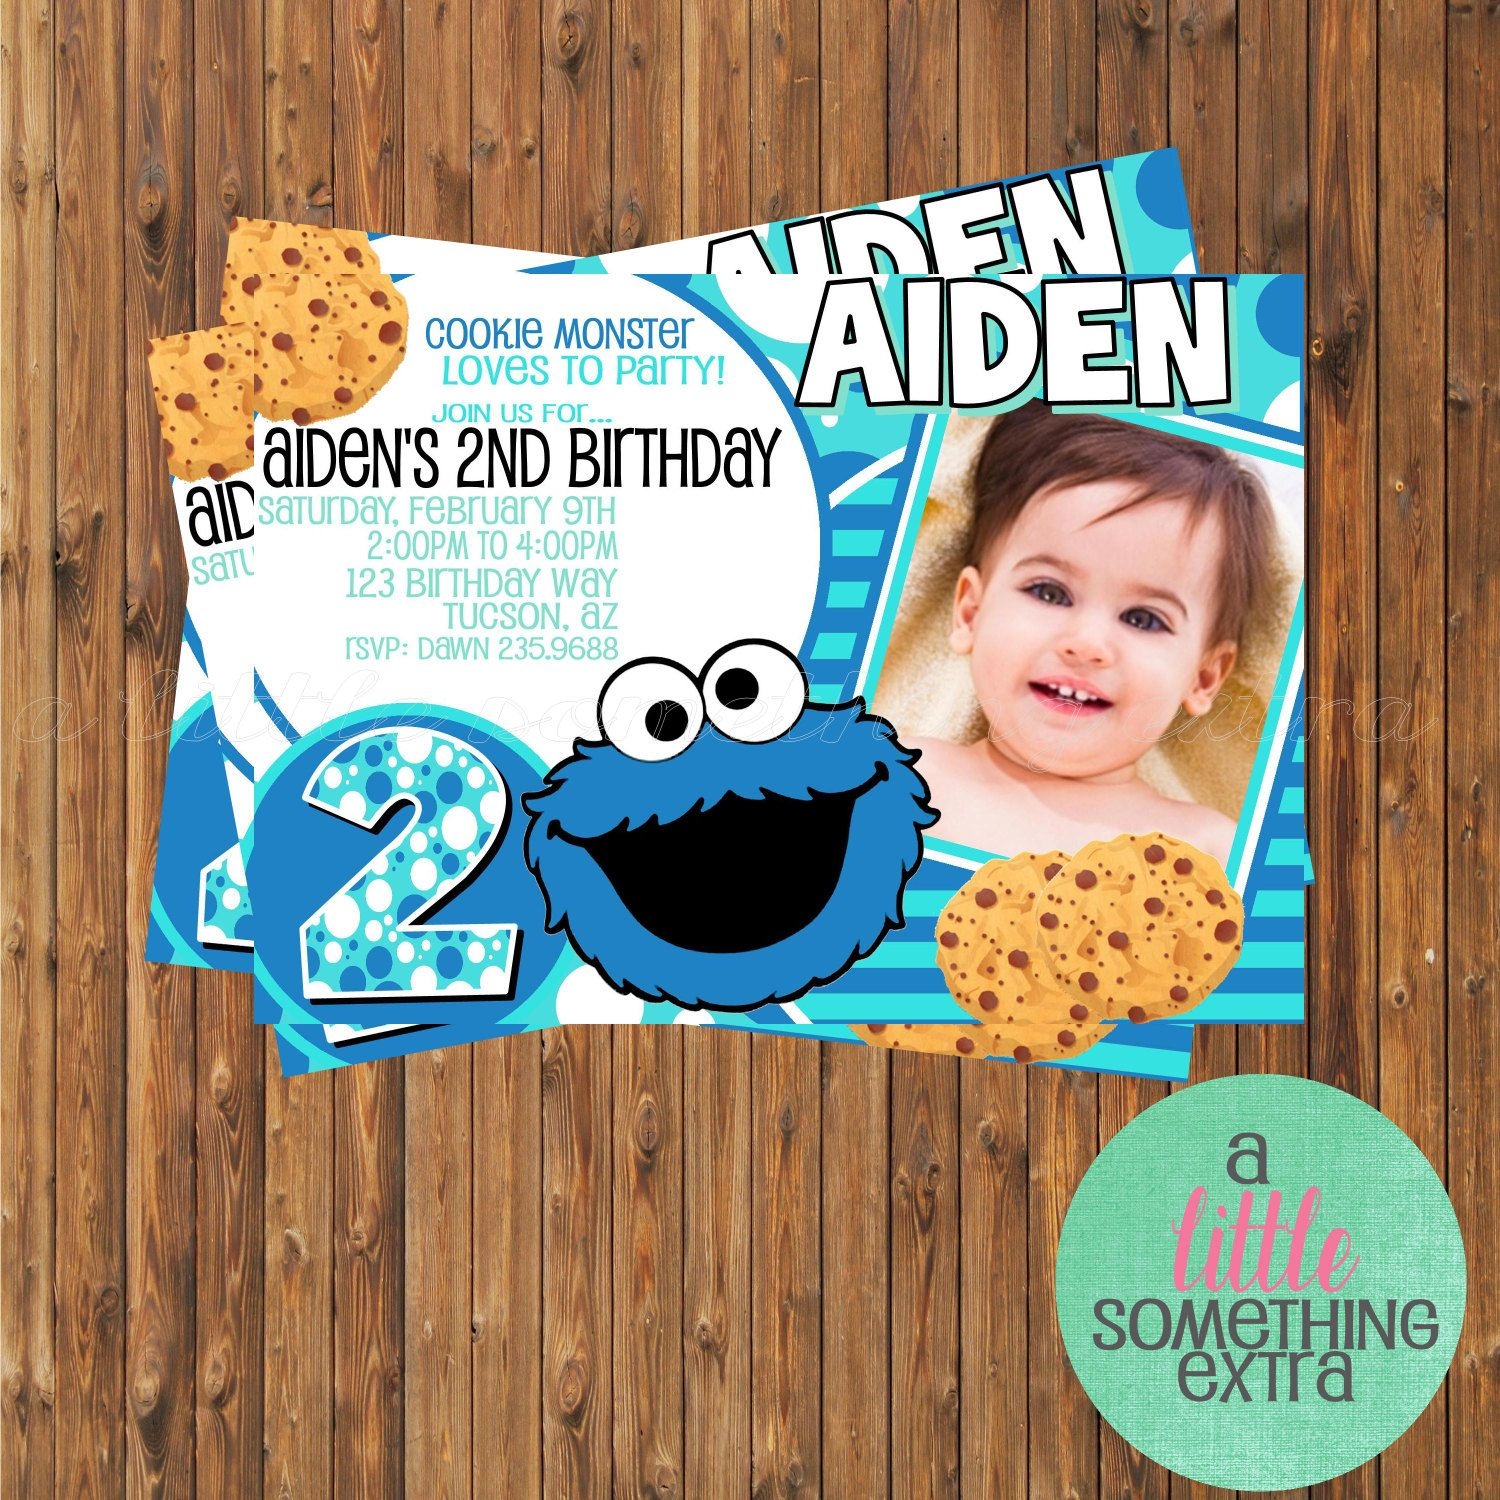 Cookie monster invitation cookie monster birthday invitation cookie monster invitation cookie monster birthday invitation printable invitation 950 via etsy filmwisefo Gallery